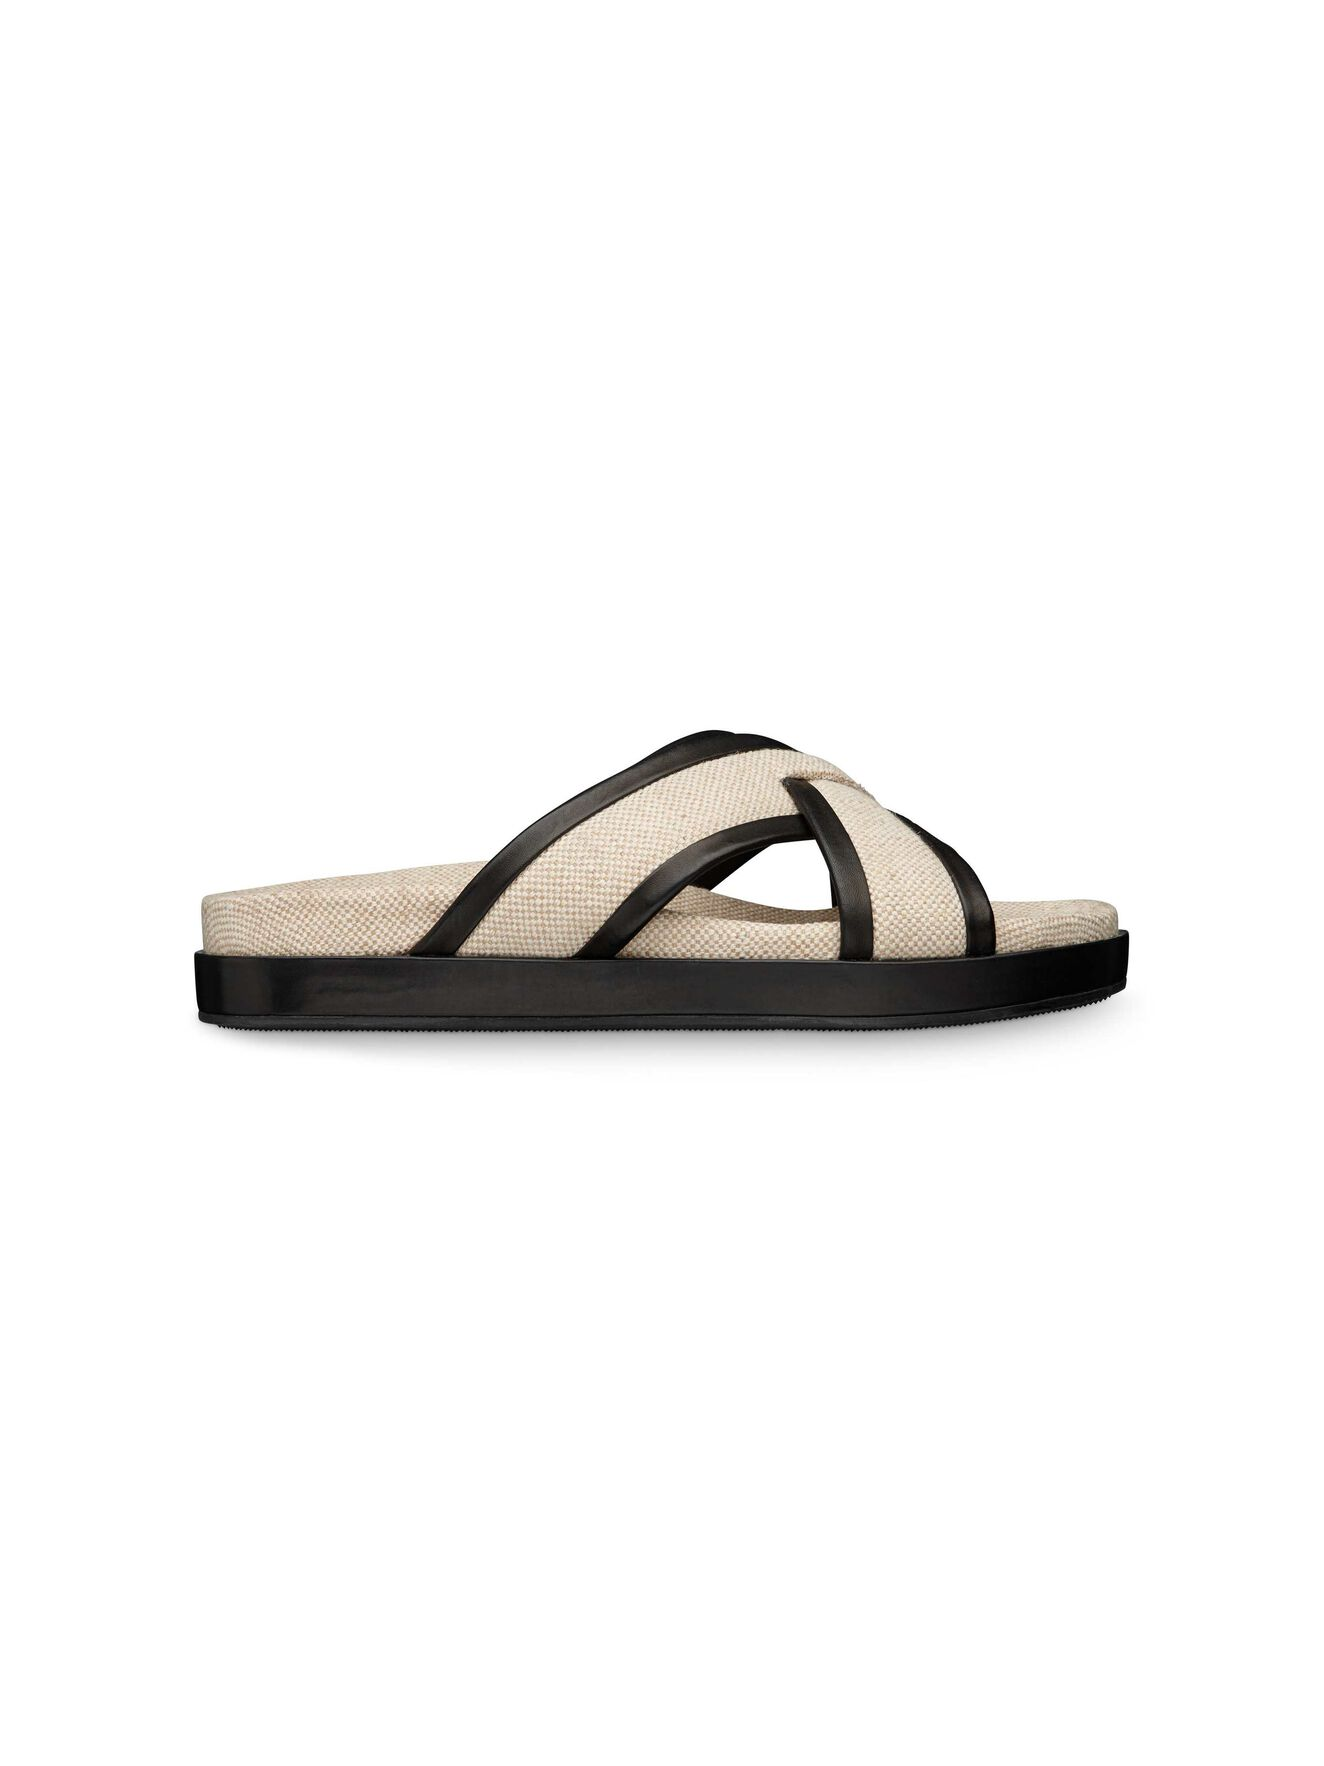 Thierry sandal in Tiger Eye from Tiger of Sweden